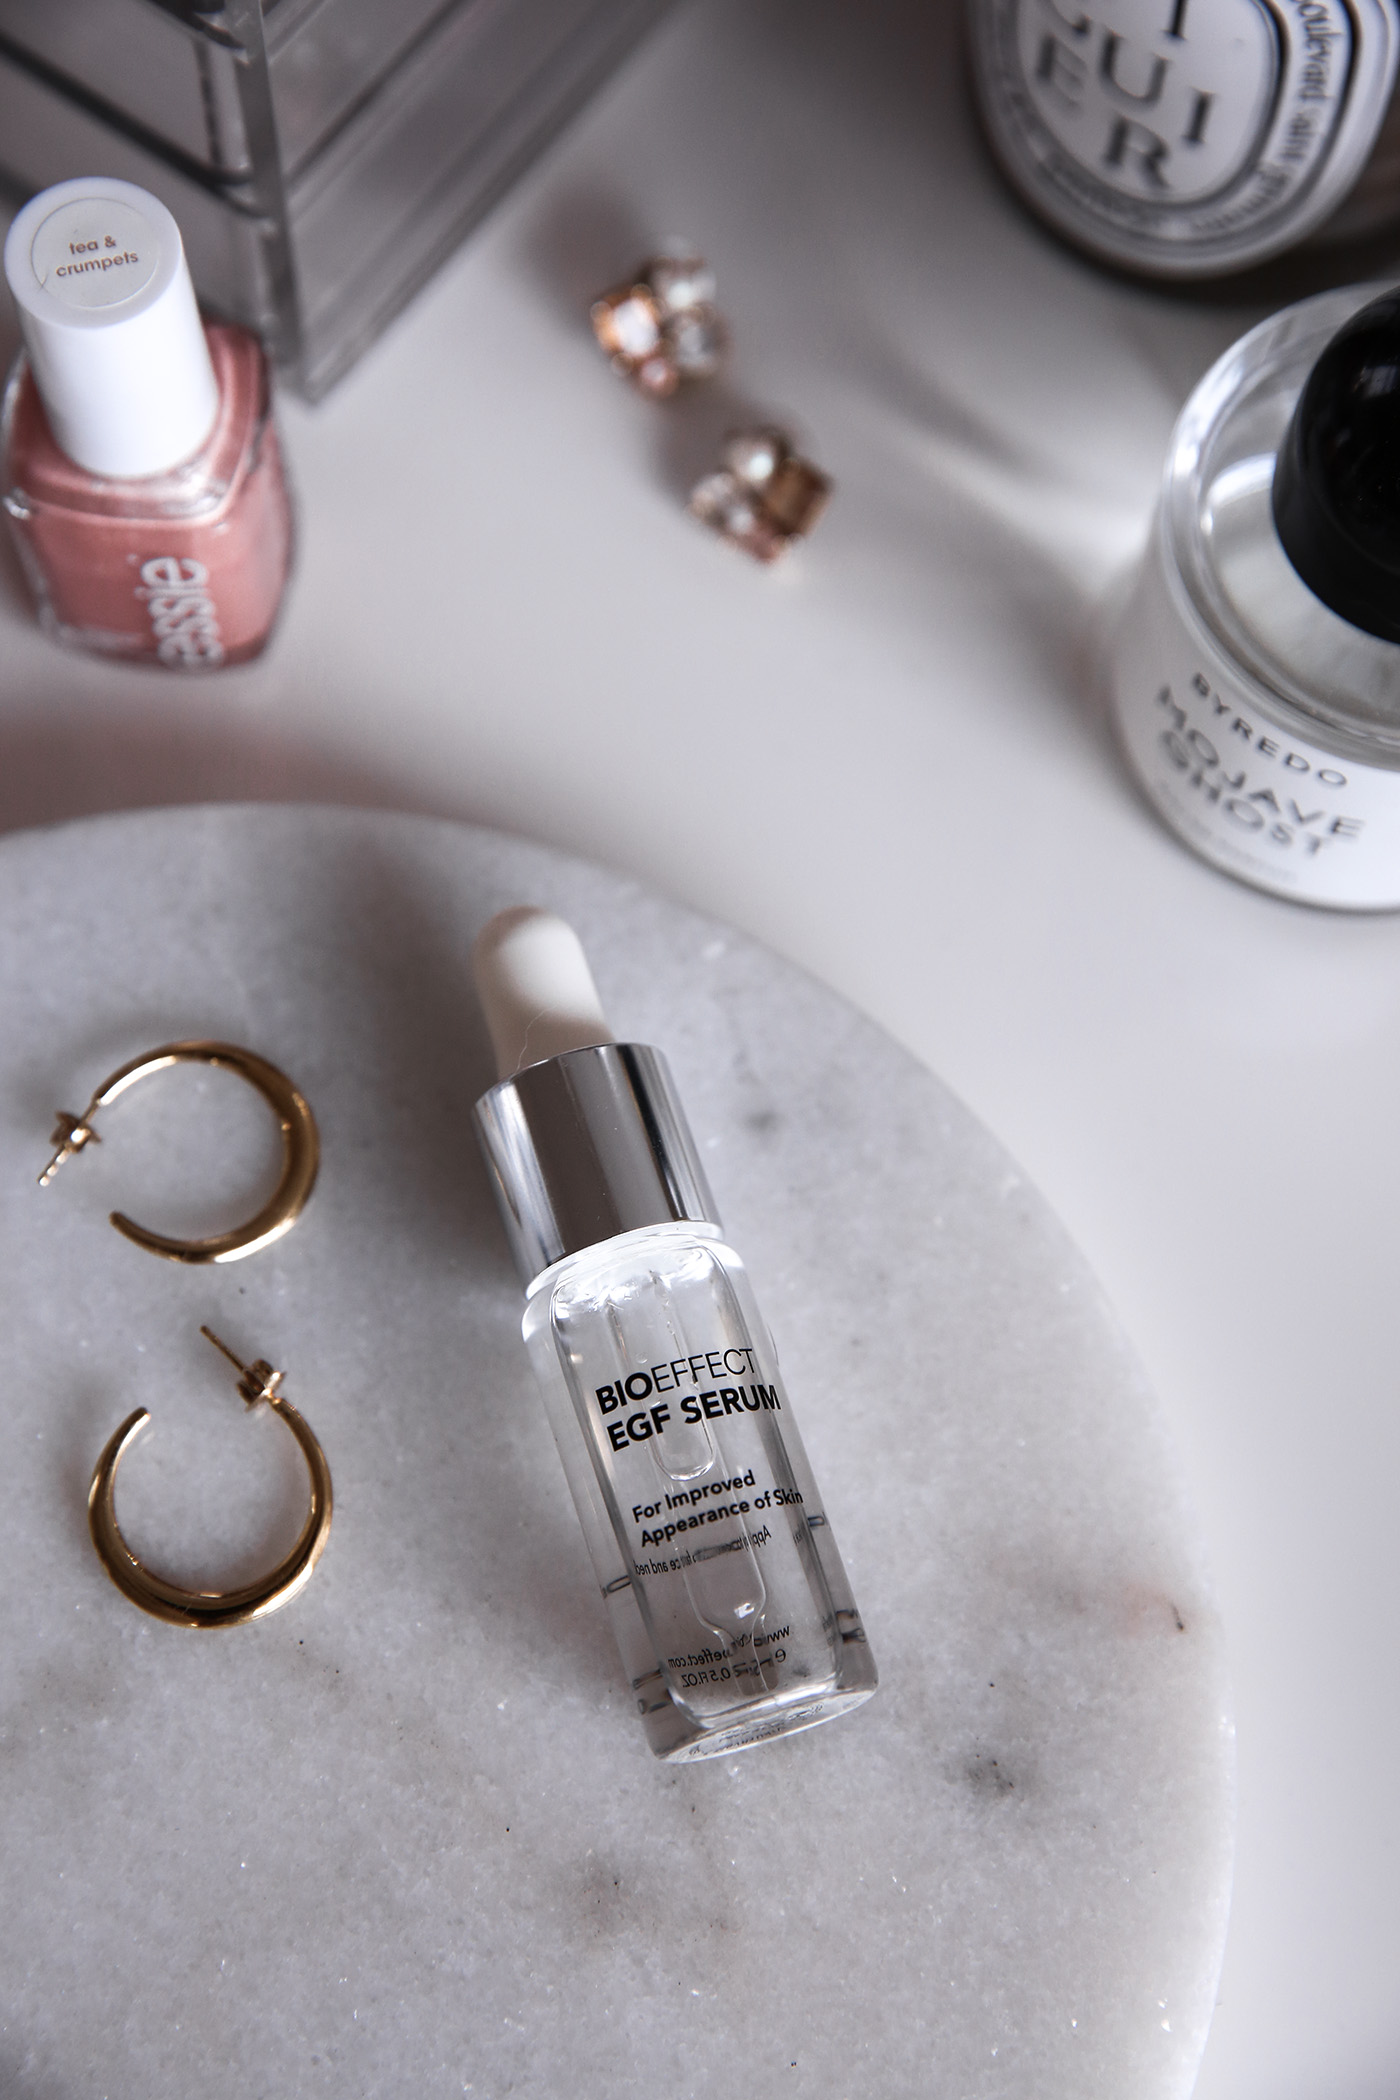 bioeffect egf serum review